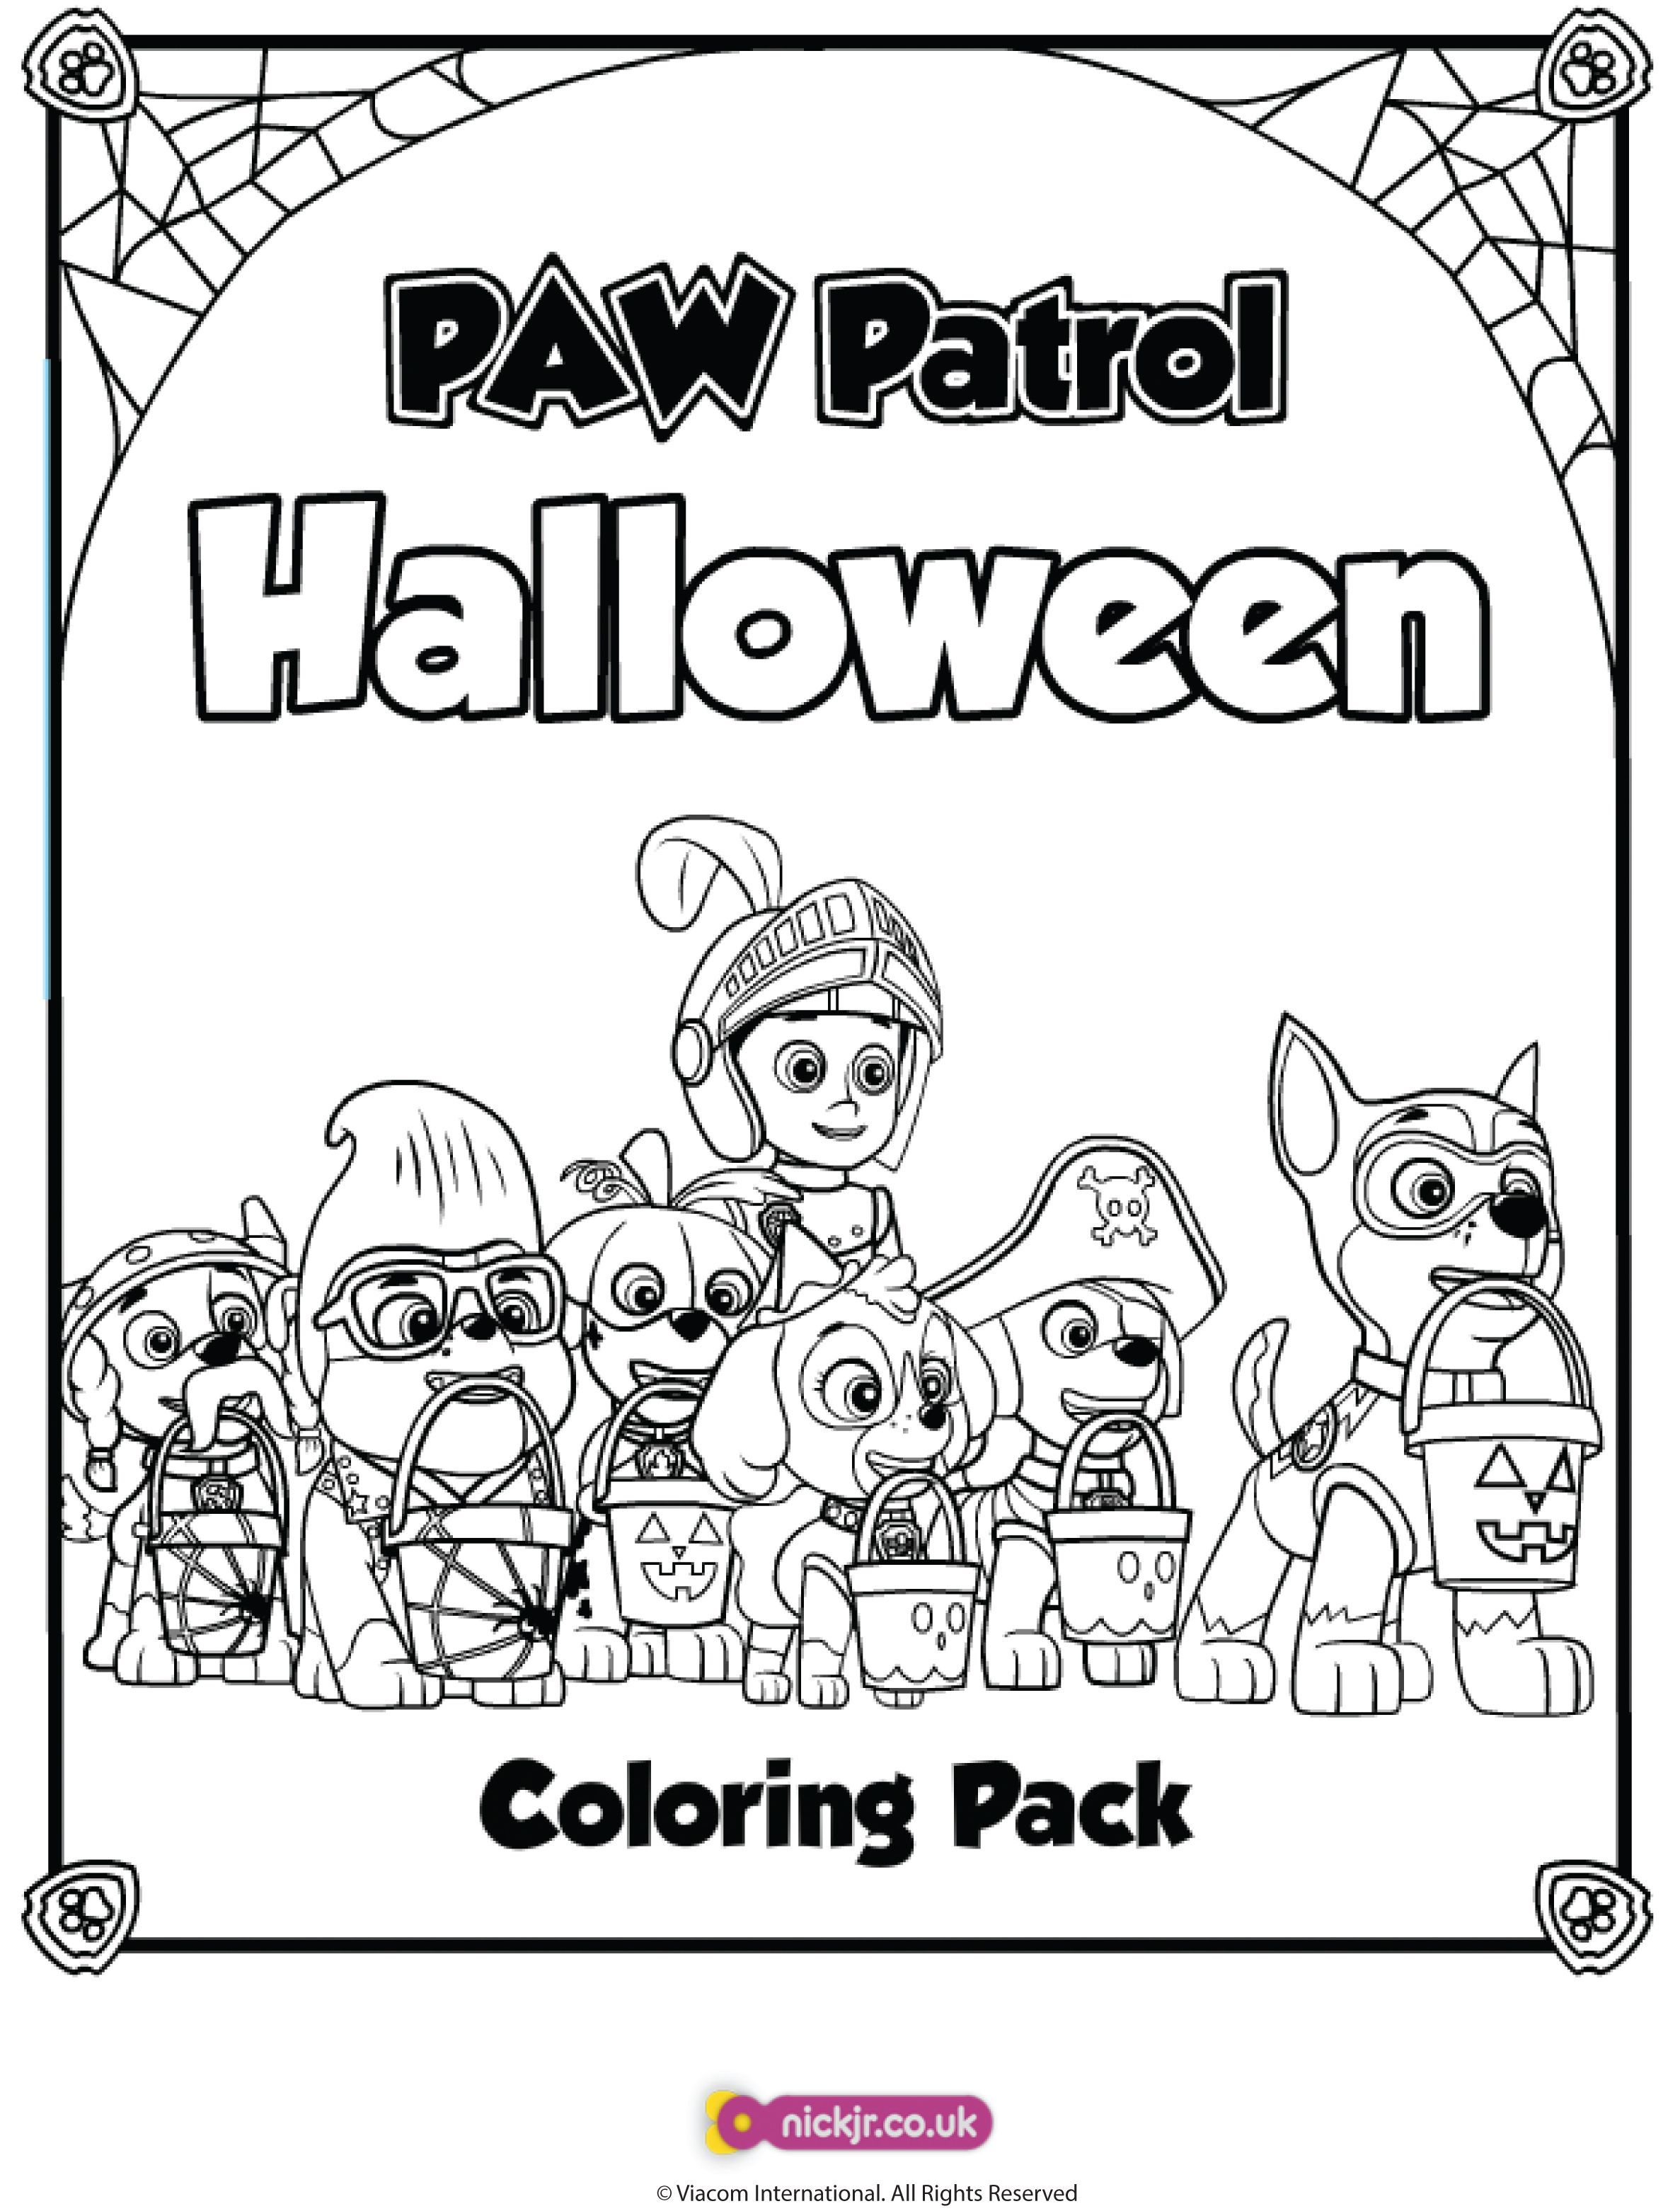 Quatang Gallery - Paw Patrol Coloring Pages Free Paw Patrol Coloring Pages Lezincnyc Albanysinsanity Com Paw Patrol Coloring Pages Paw Patrol Coloring Nick Jr Coloring Pages